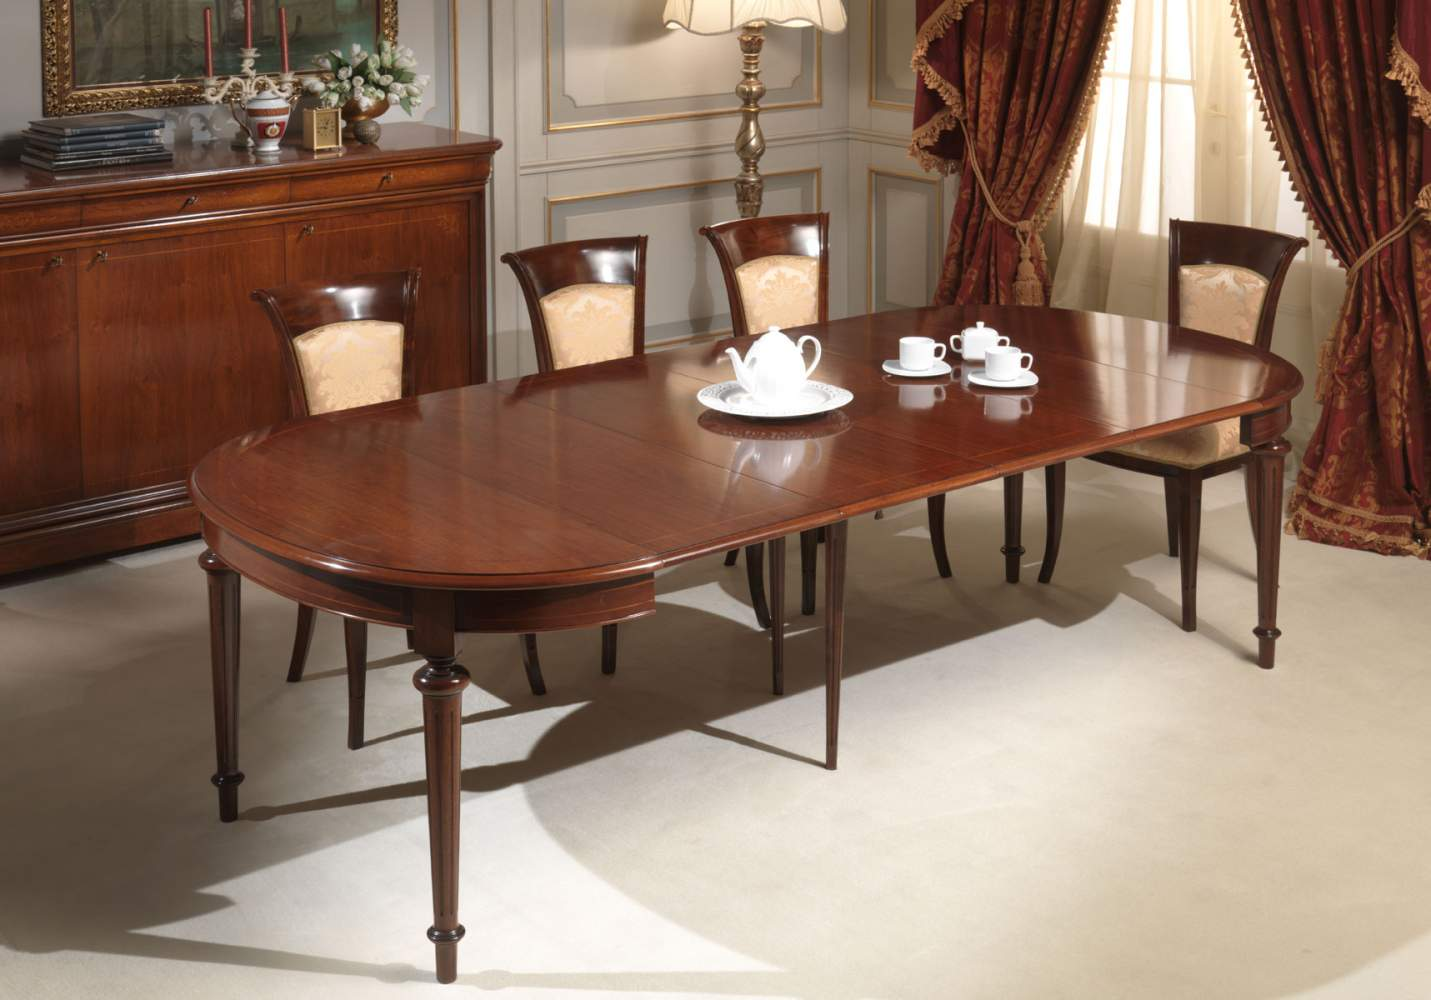 Oval table completely extended